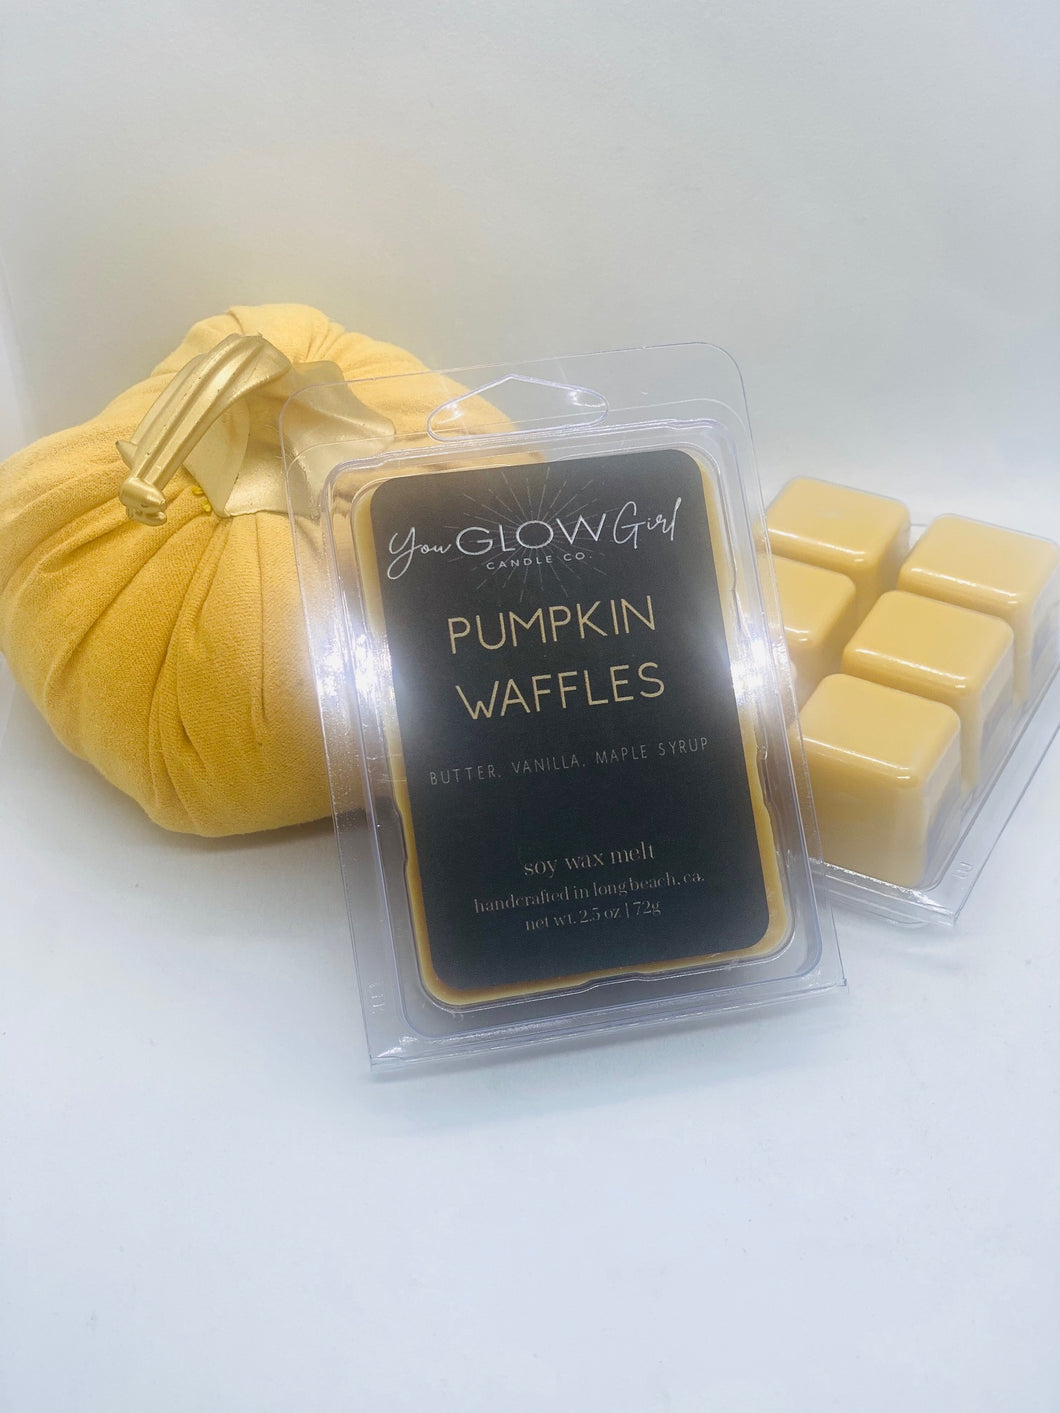 Pumpkin Waffles Wax Melt